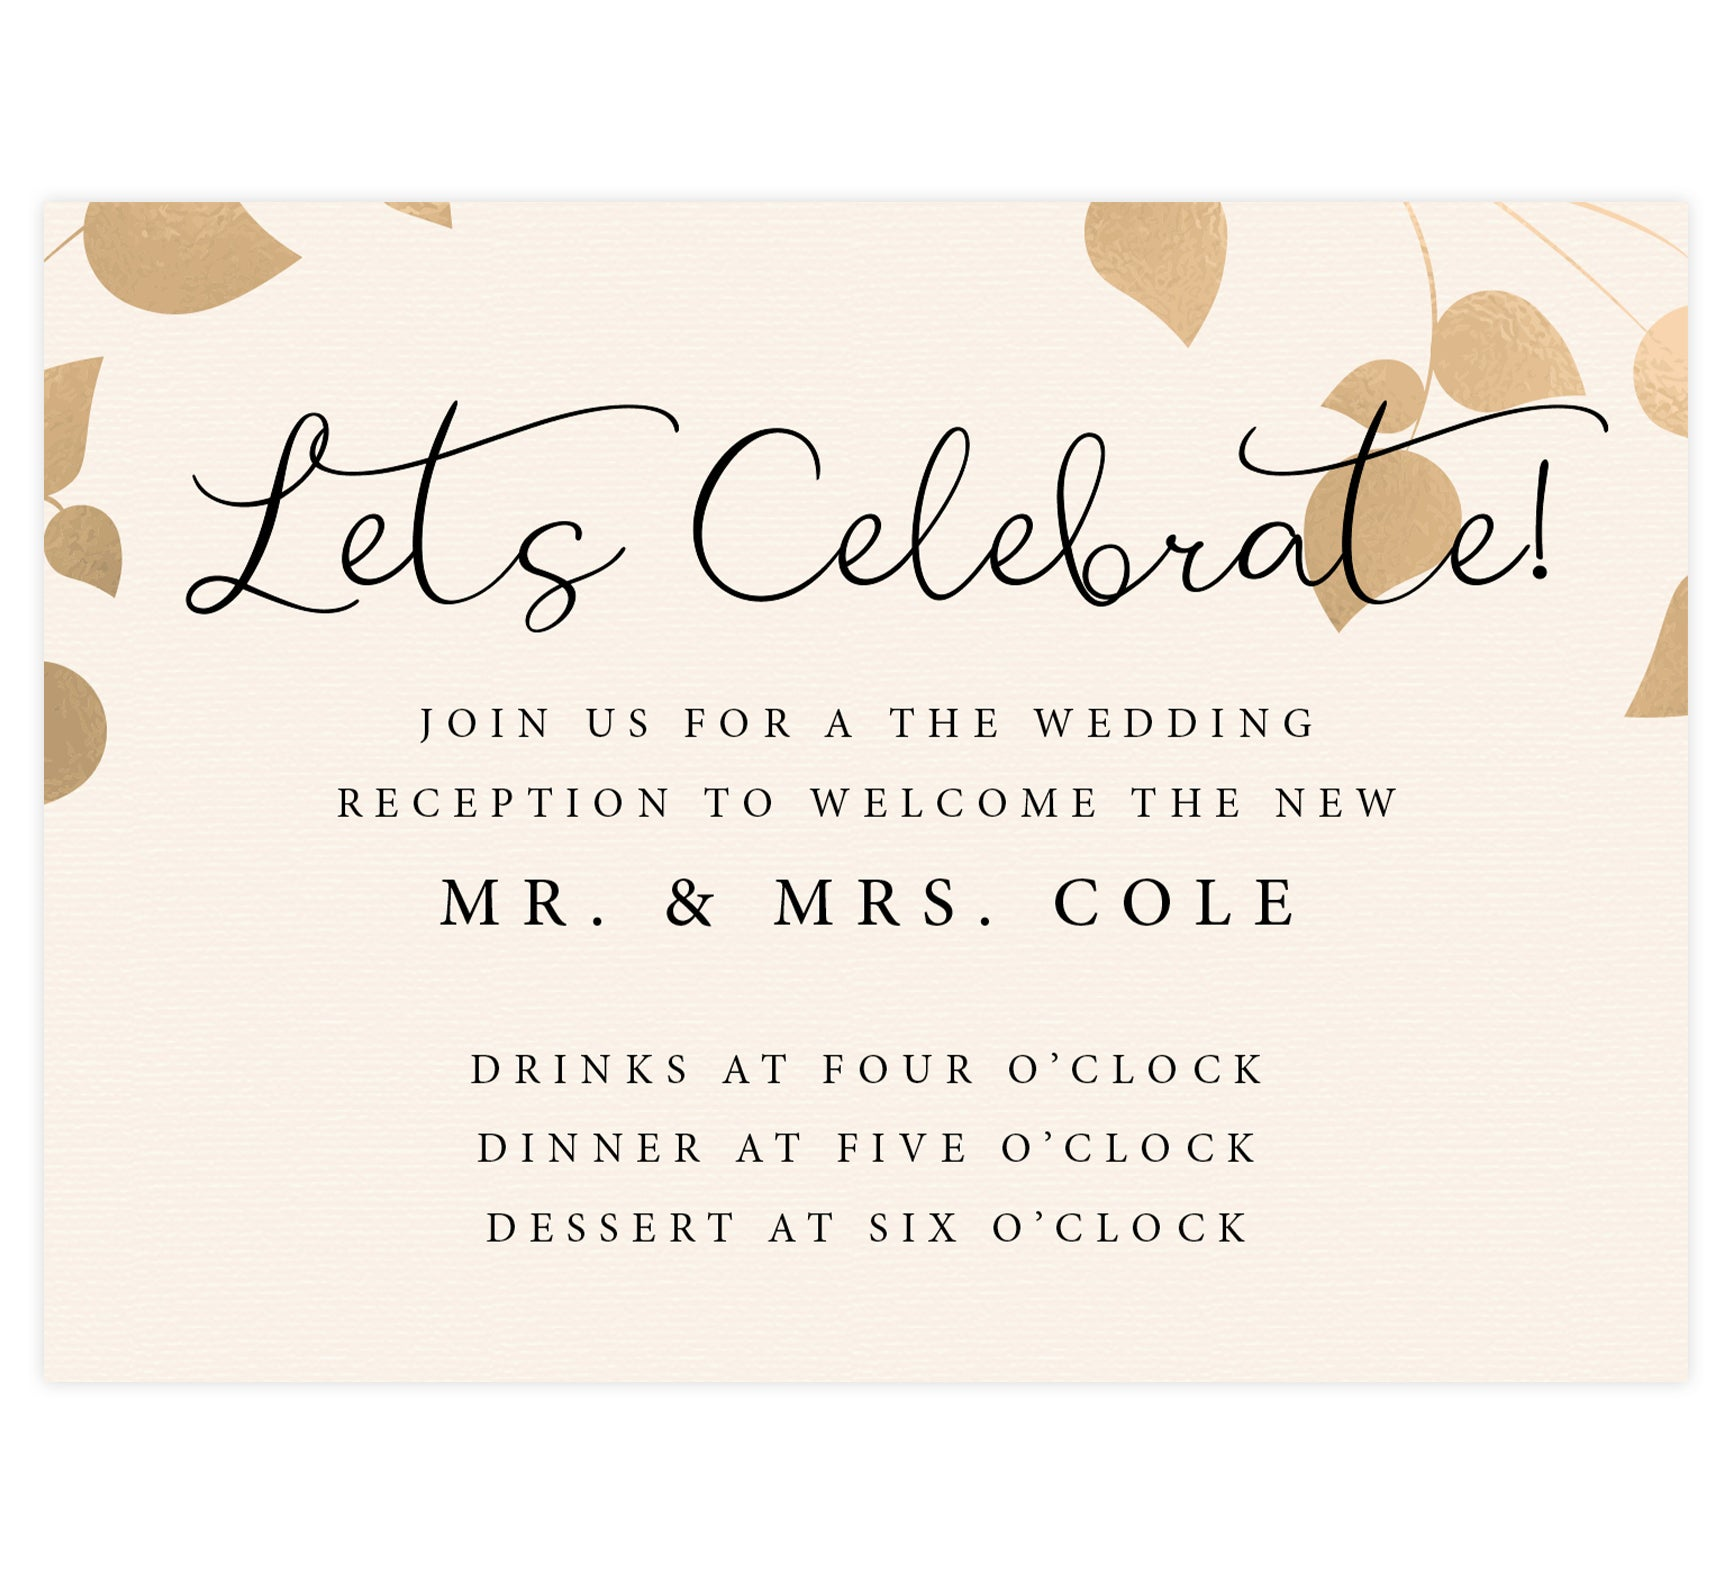 Elegant Celebration wedding reception card; cream textured background with gold leaves on the top edge and black text